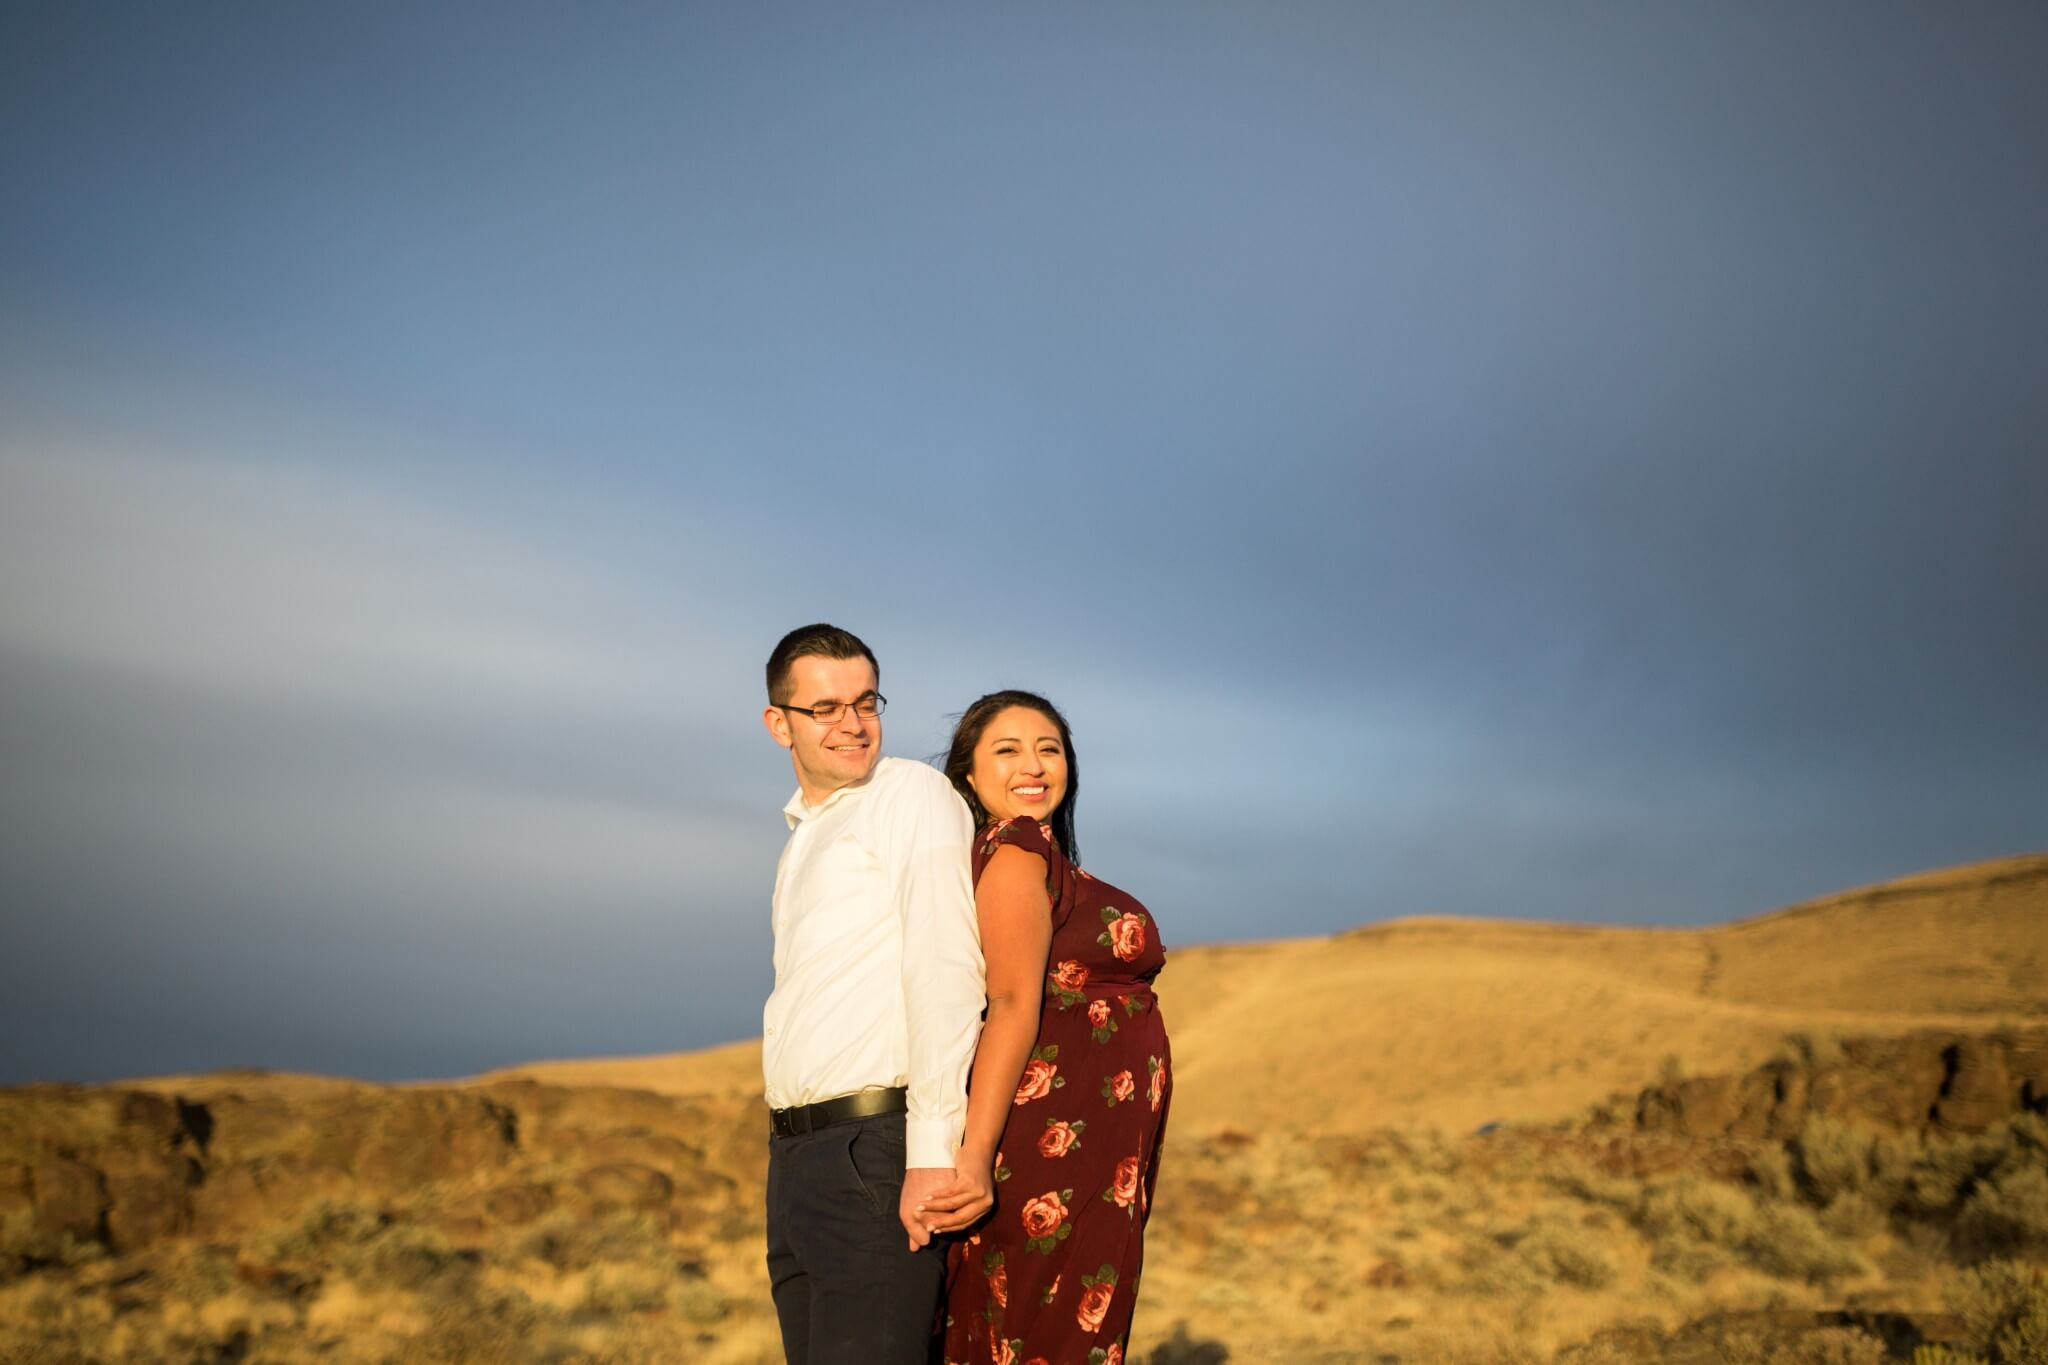 Lesly & Michael Vantage Engagement by Bill Weisgerber Spokane Photographer (48 of 71).jpg